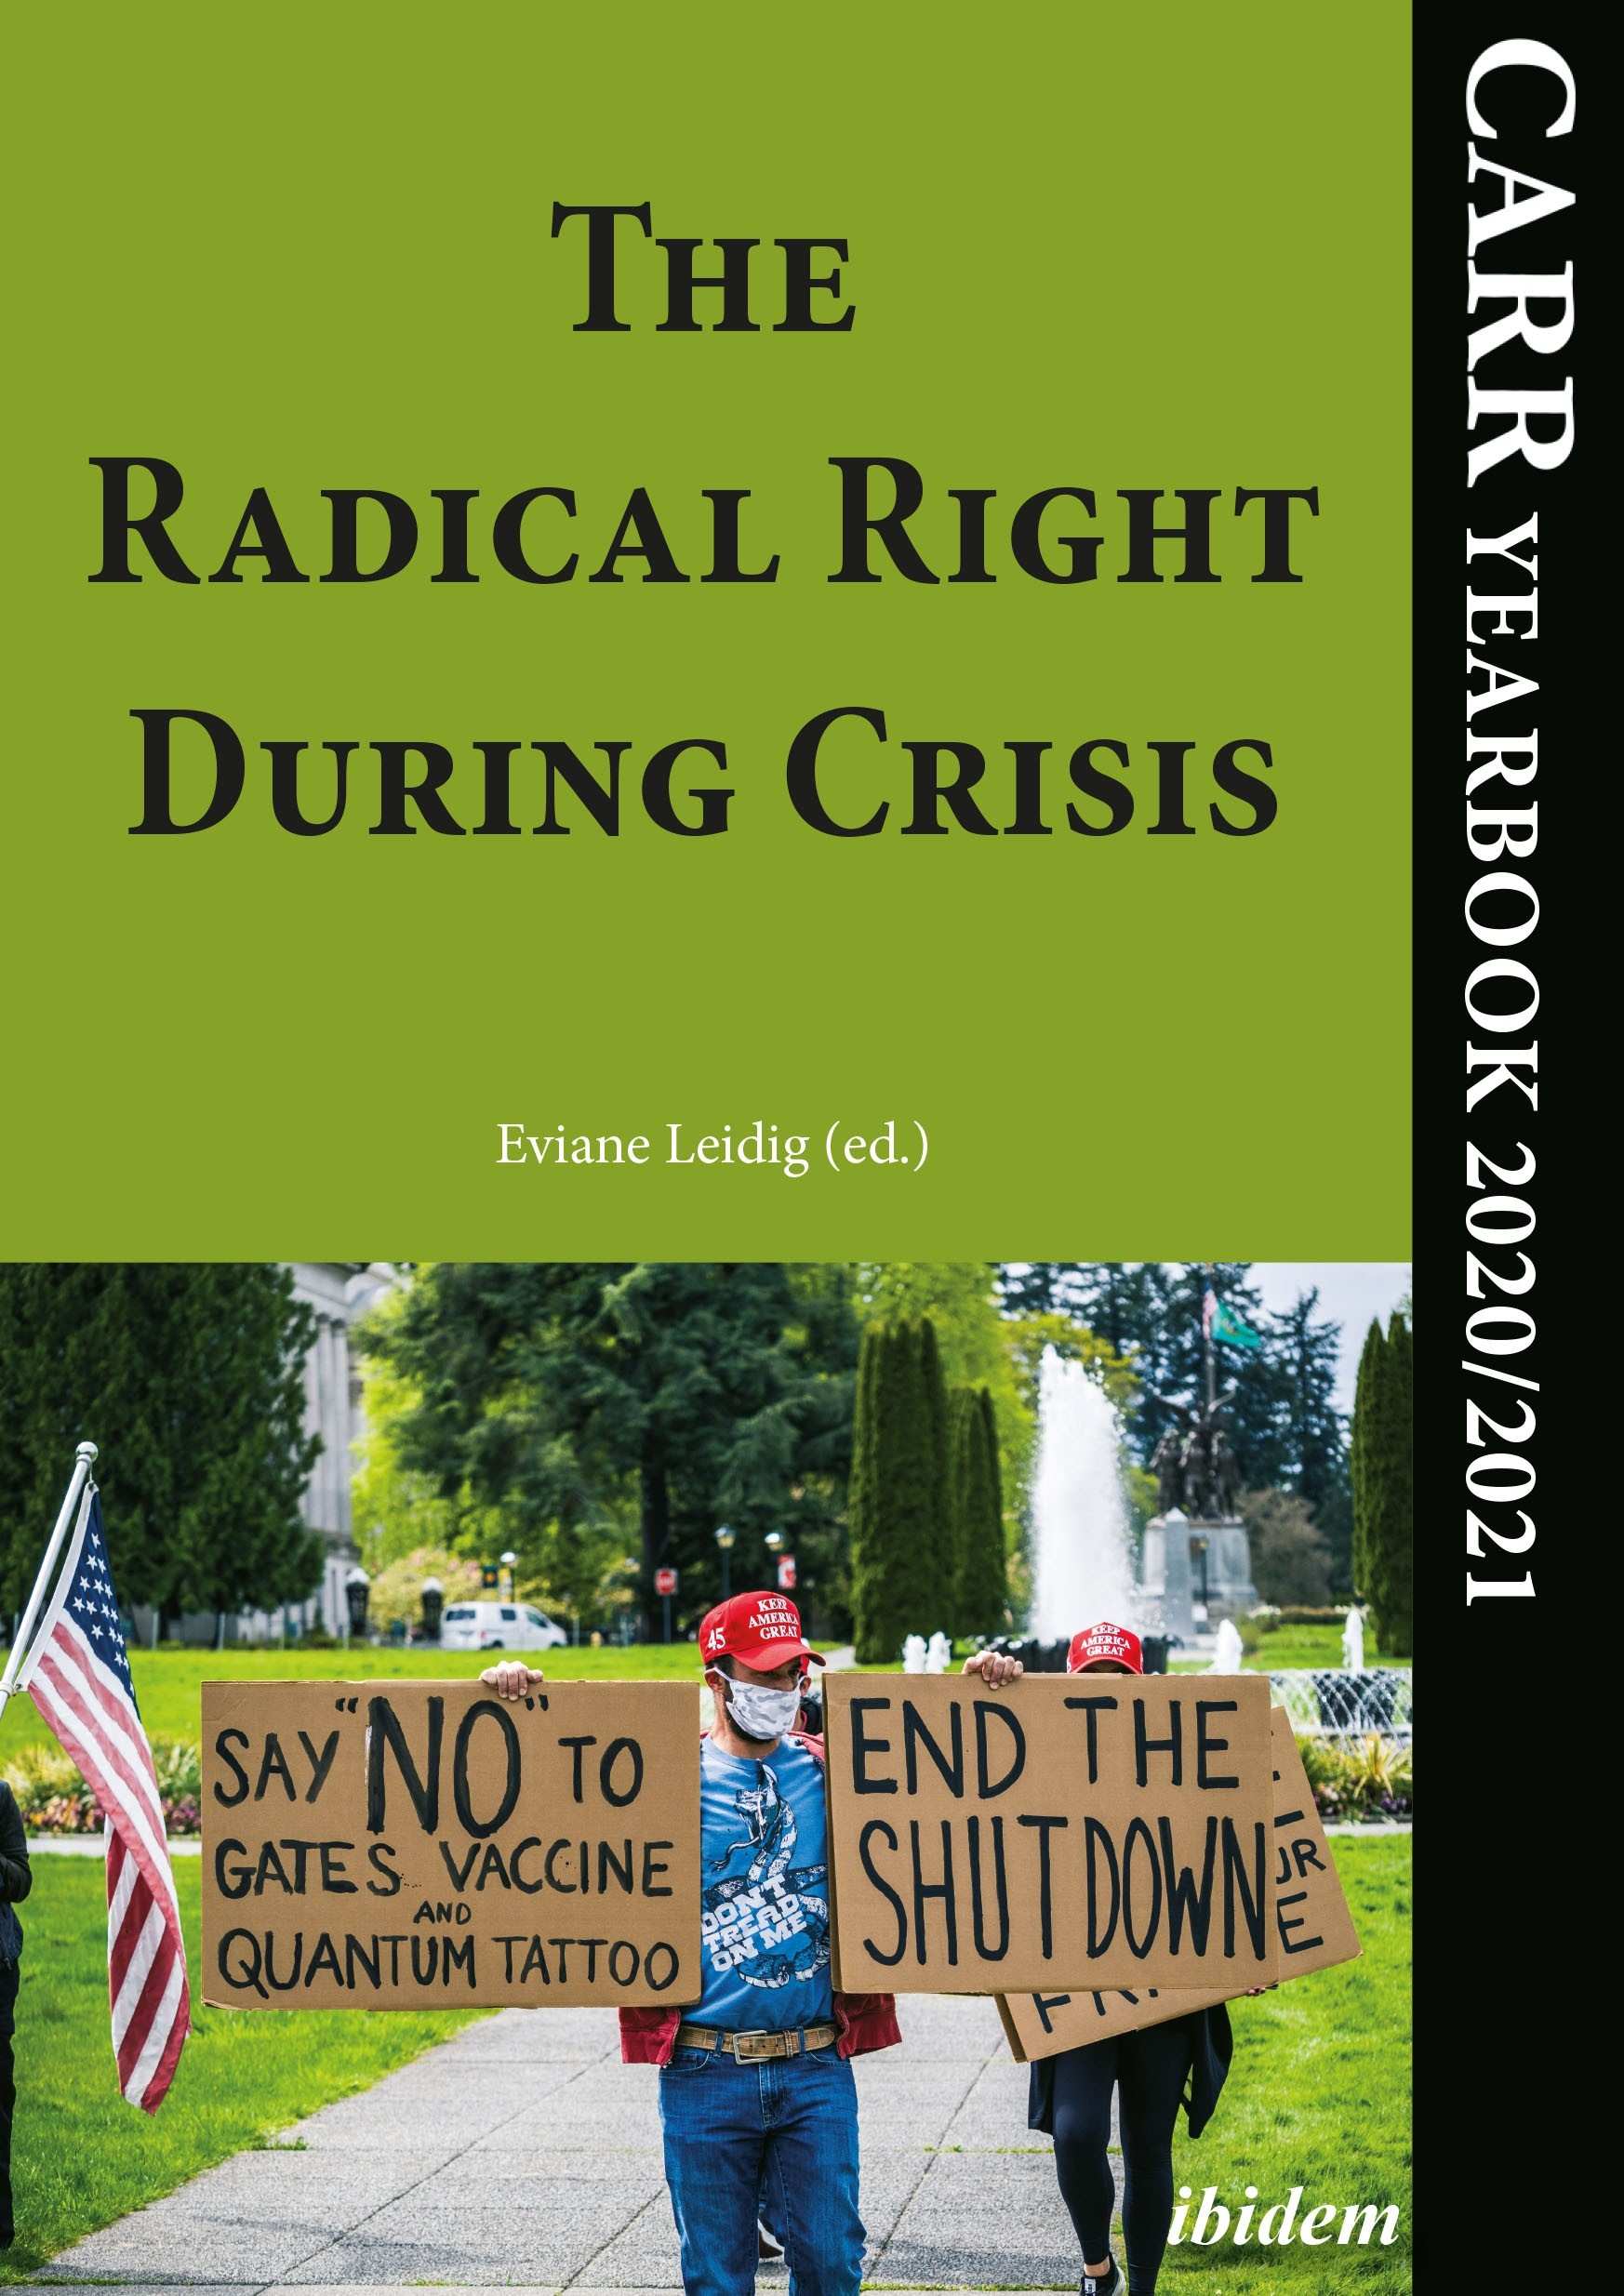 The Radical Right During Crisis